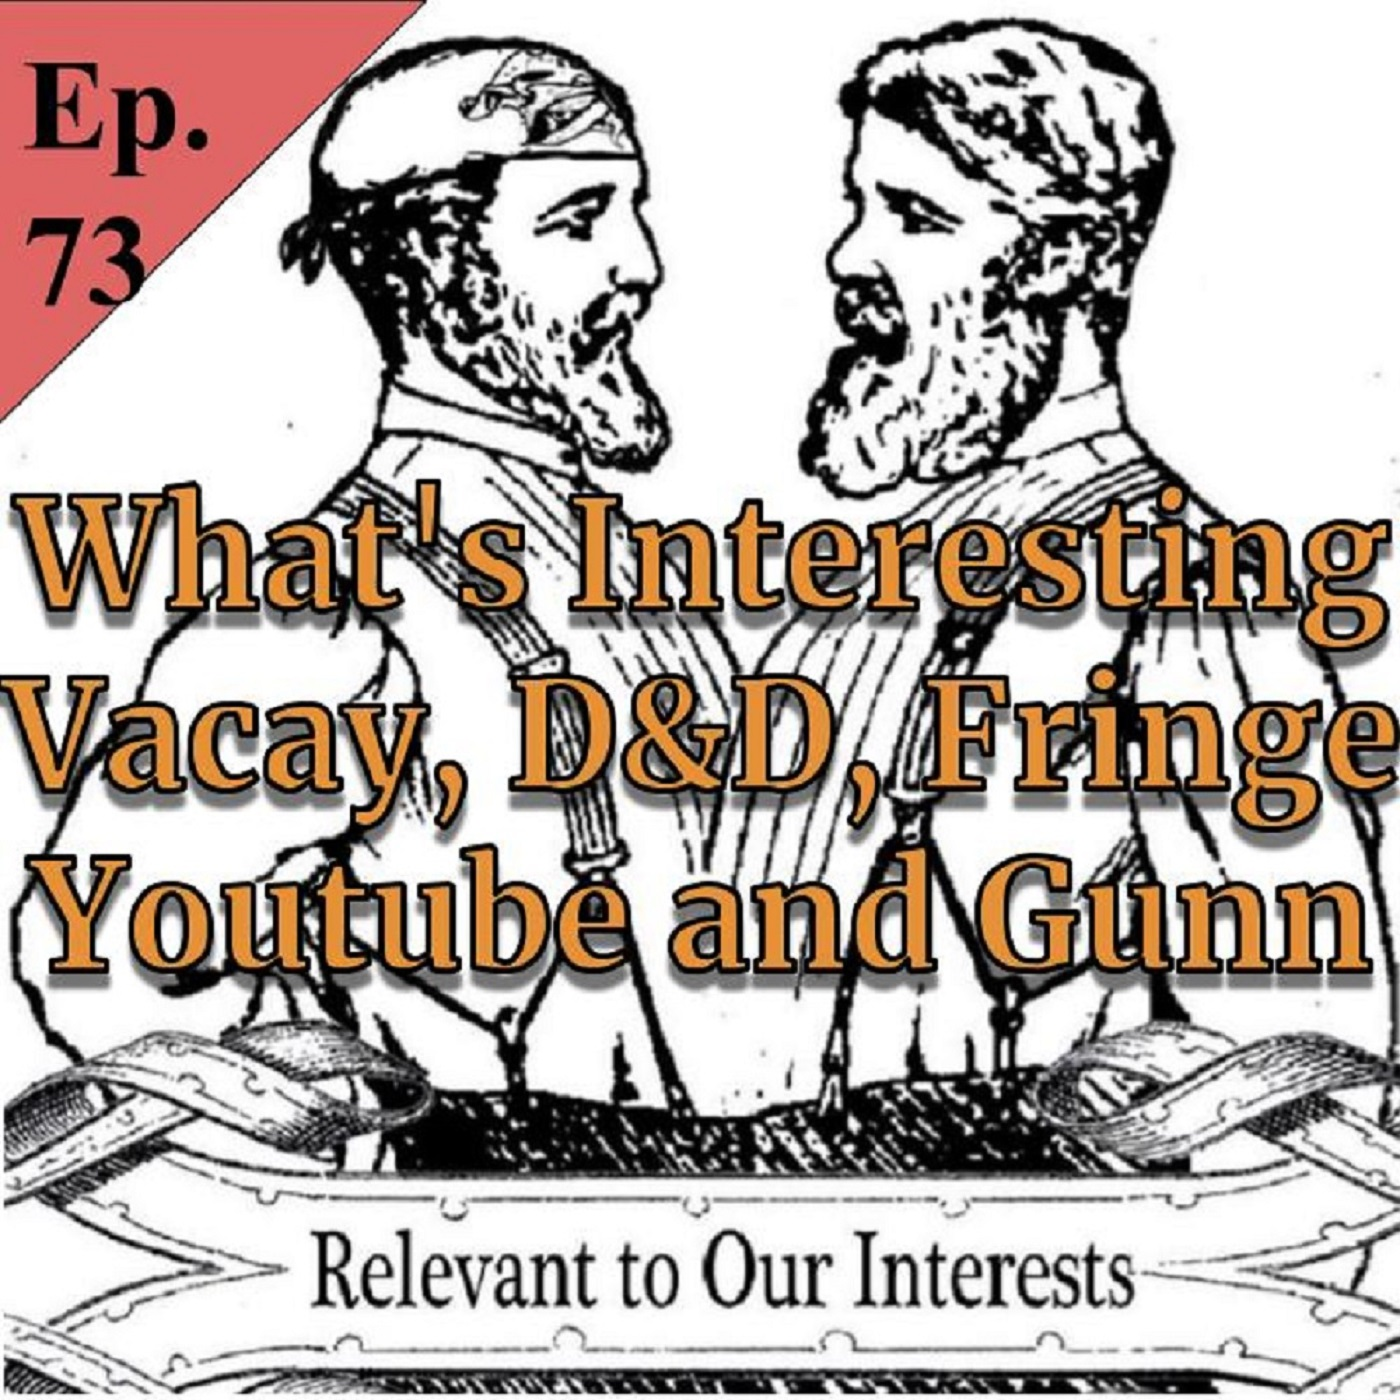 Episode 73 What's Interesting: D&D, Youtube and James Gunn